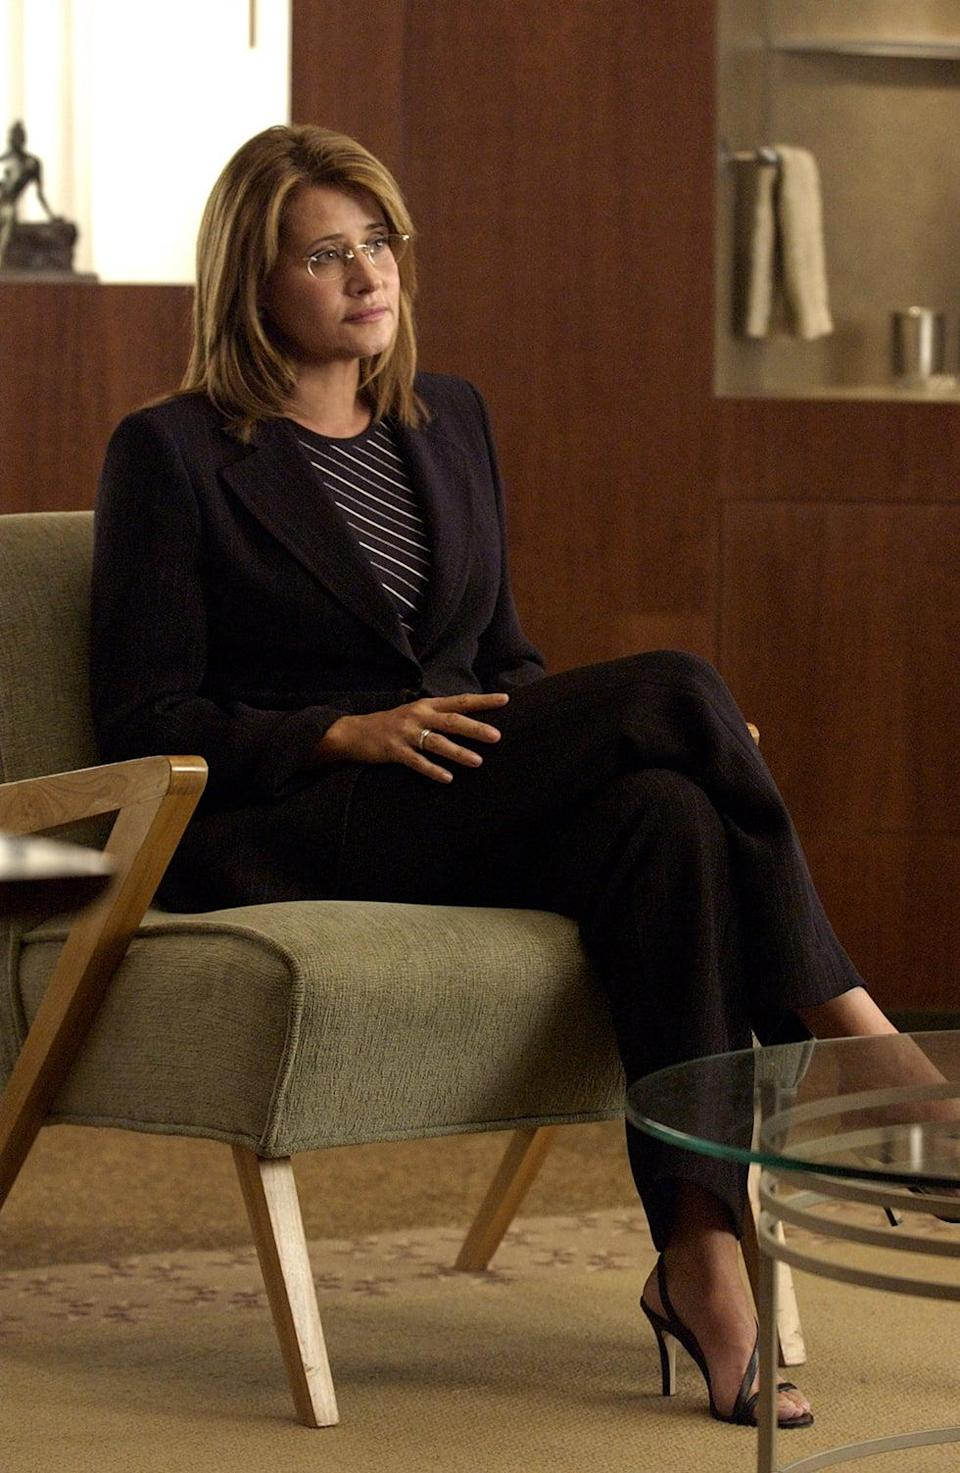 """<p>Although she's a fellow Italian, Dr. Jennifer Melfi is merely an observer and holds nothing in common with Tony and his world. Unlike other women depicted in <strong>The Sopranos</strong>, Melfi is reserved, never gives in to Tony's advances, and doesn't take opportunities to get """"even."""" Her commitment to her practice is reflected in her lackluster wardrobe - filled with monochromatic sets - in contrast to Adriana and Carmela's ostentatious outfits. Today, the uniform <a href=""""https://www.popsugar.com/fashion/How-Wear-Suits-Flat-Sandals-46153319"""" class=""""link rapid-noclick-resp"""" rel=""""nofollow noopener"""" target=""""_blank"""" data-ylk=""""slk:dress code is back"""">dress code is back</a>, but in a more casual fashion, found to be paired with sandals instead of strappy heels.</p>"""